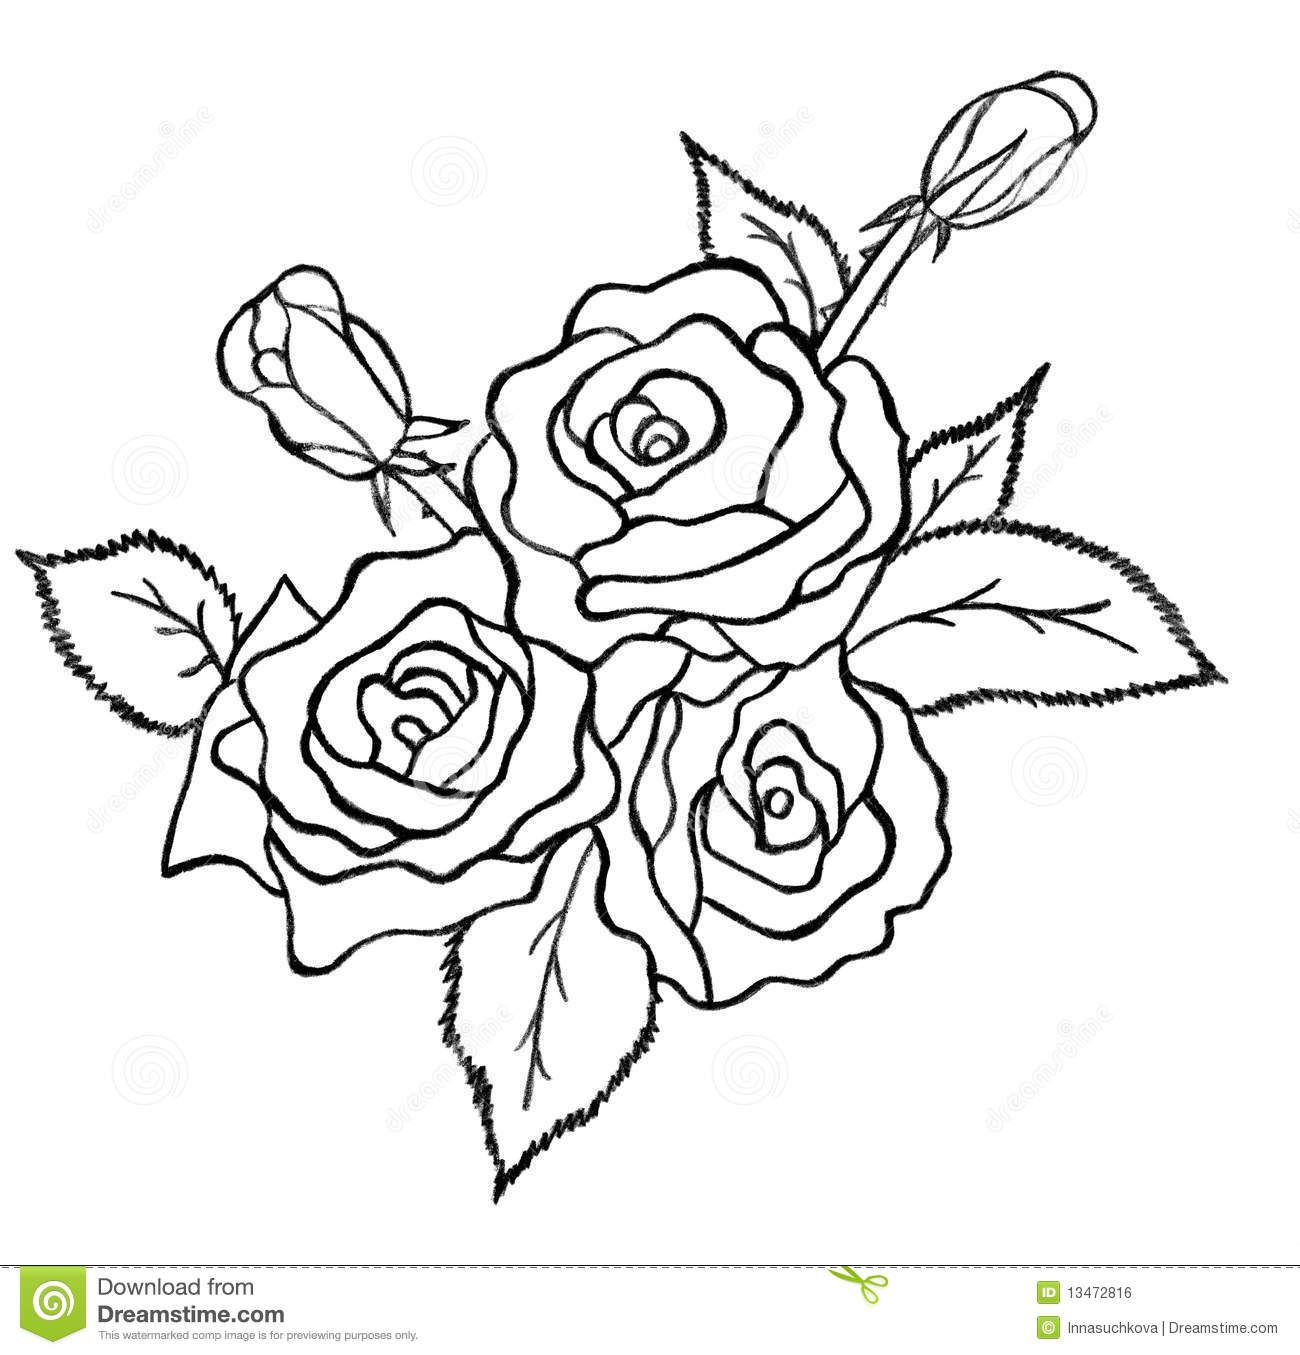 Bunch of roses sketch on white background, pencil drawing